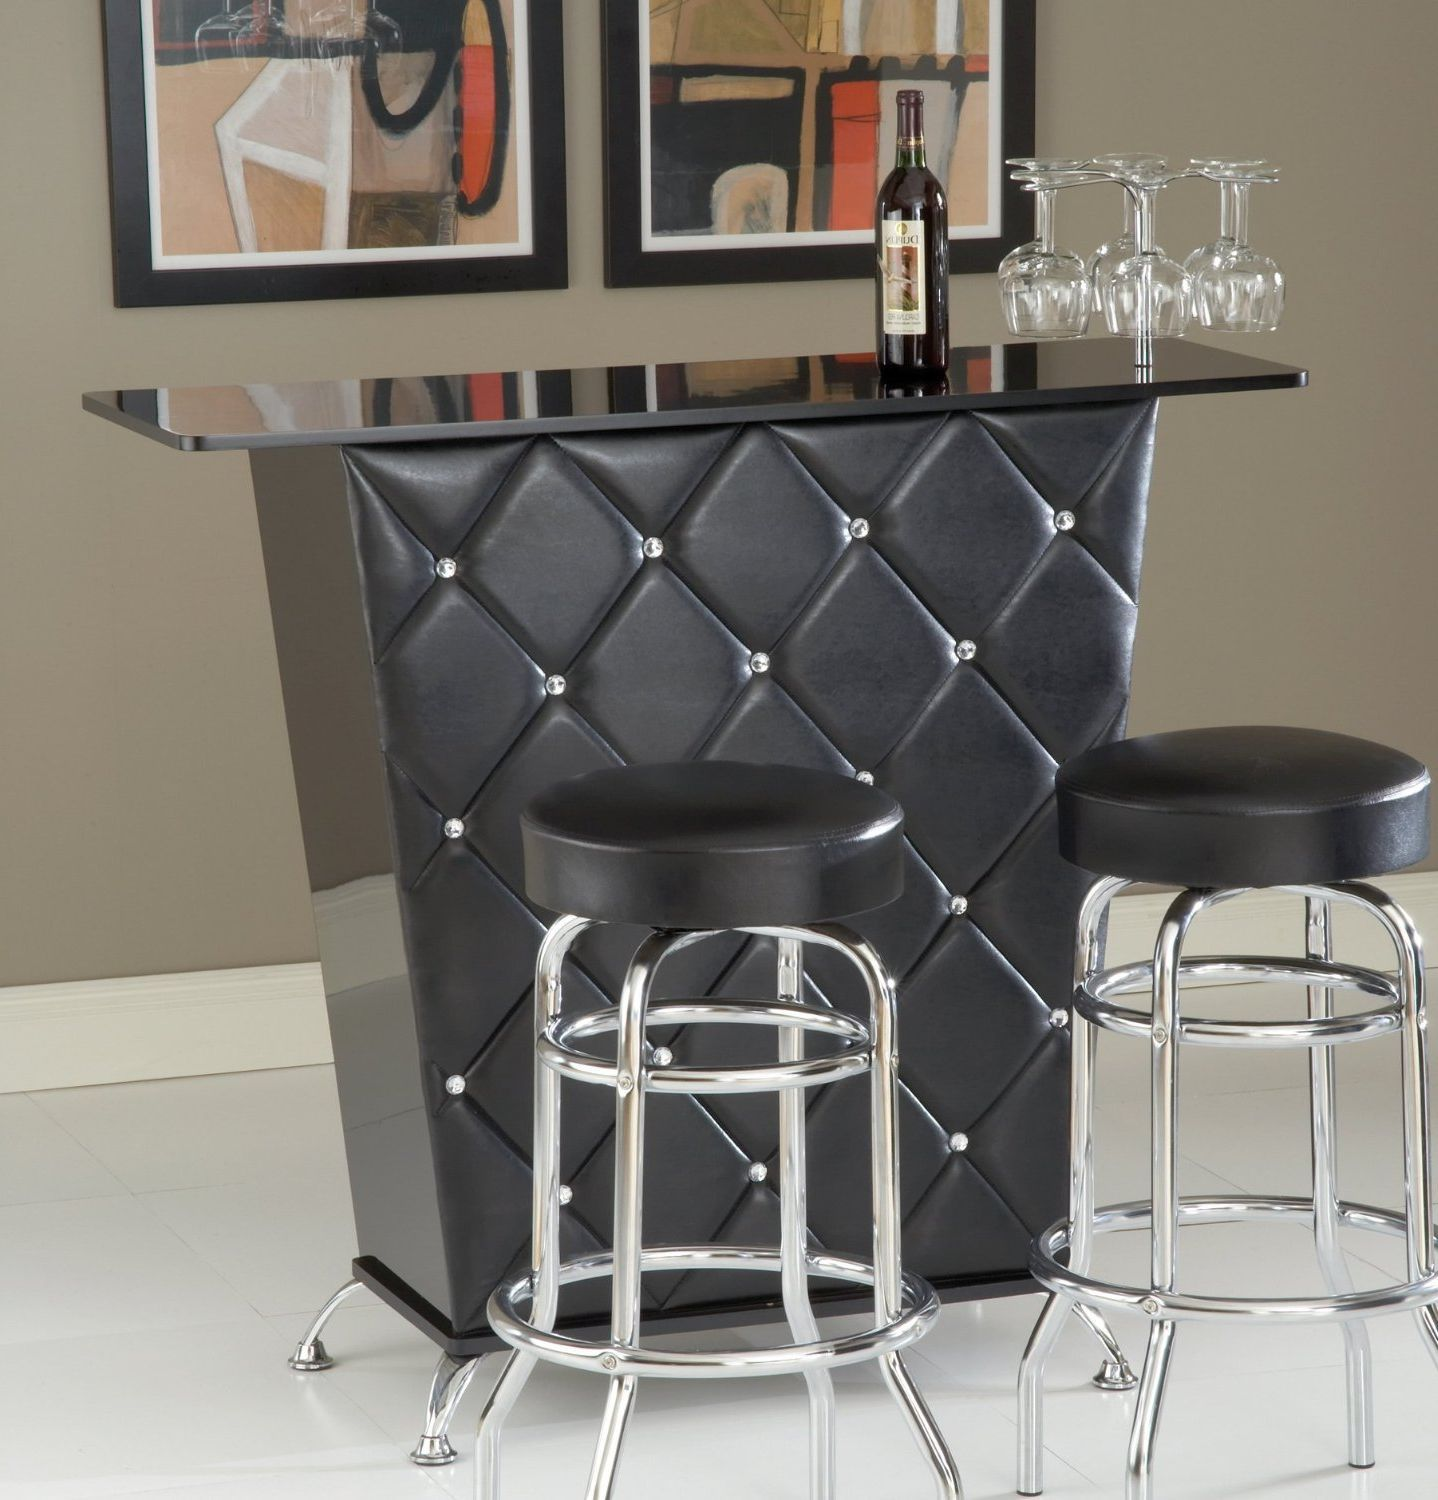 Portable mini bar furniture design ideas home bar chairs for Mini bar decorating ideas